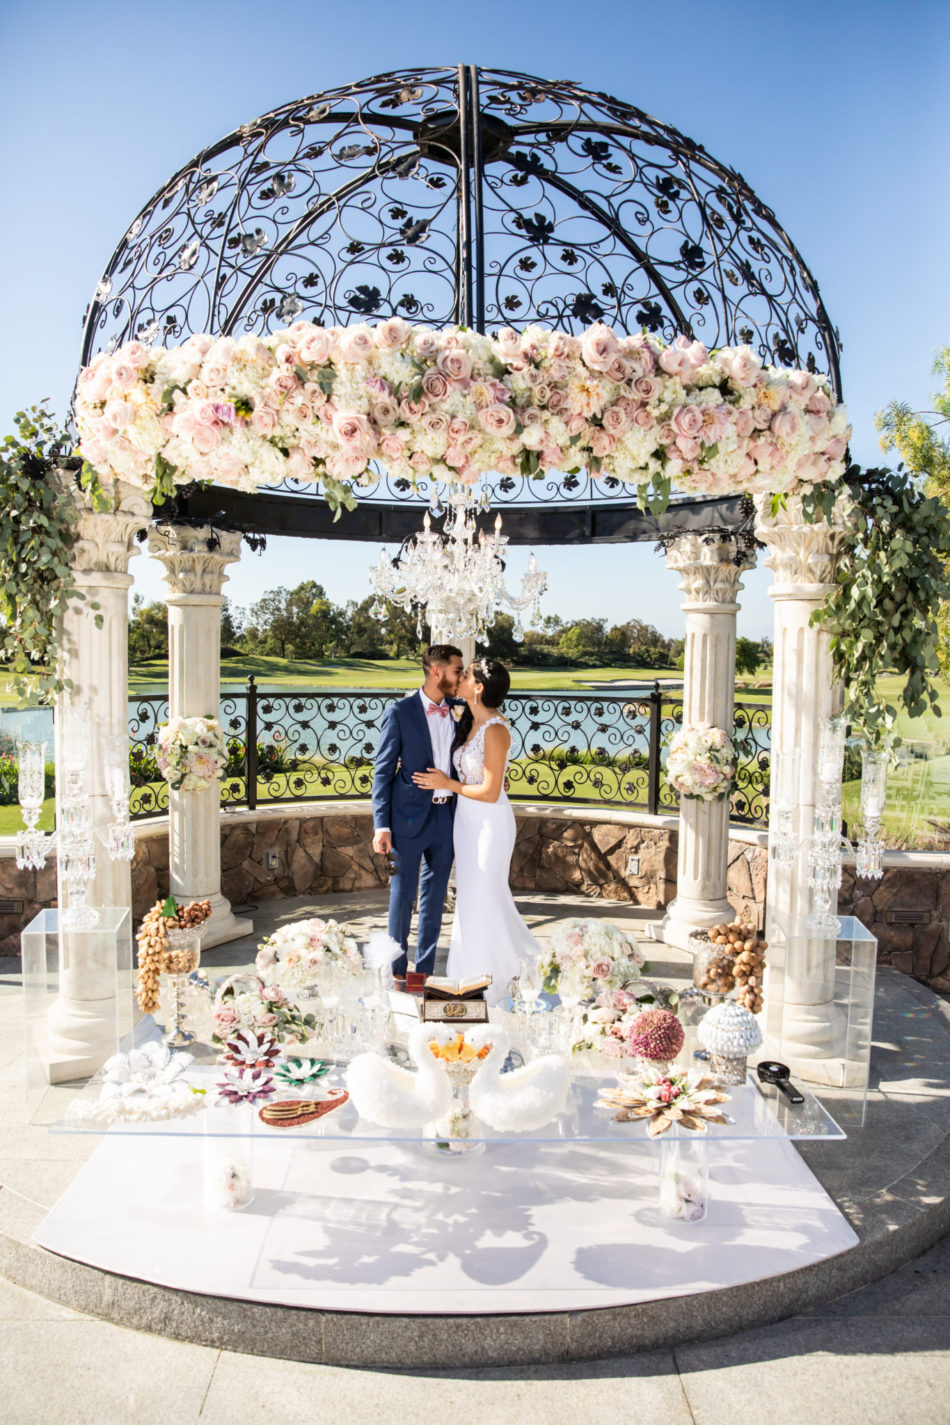 floral arch, pink floral arch, blush floral arch, floral design, florist, wedding florist, wedding flowers, orange county weddings, orange county wedding florist, orange county florist, orange county floral design, flowers by cina